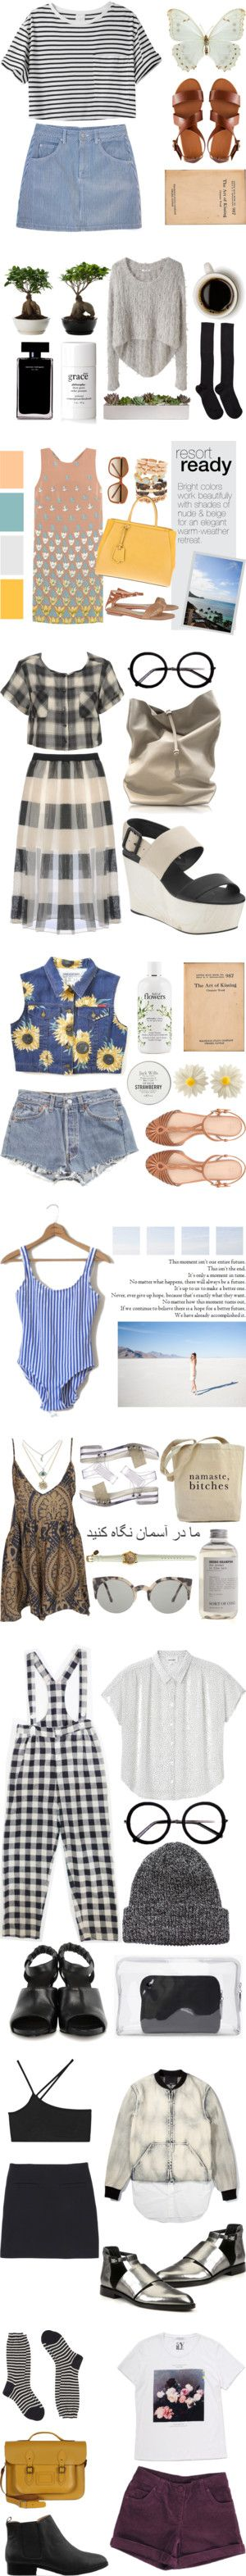 """Those Summer Nights"" by natalieoffduty ❤ liked on Polyvore"